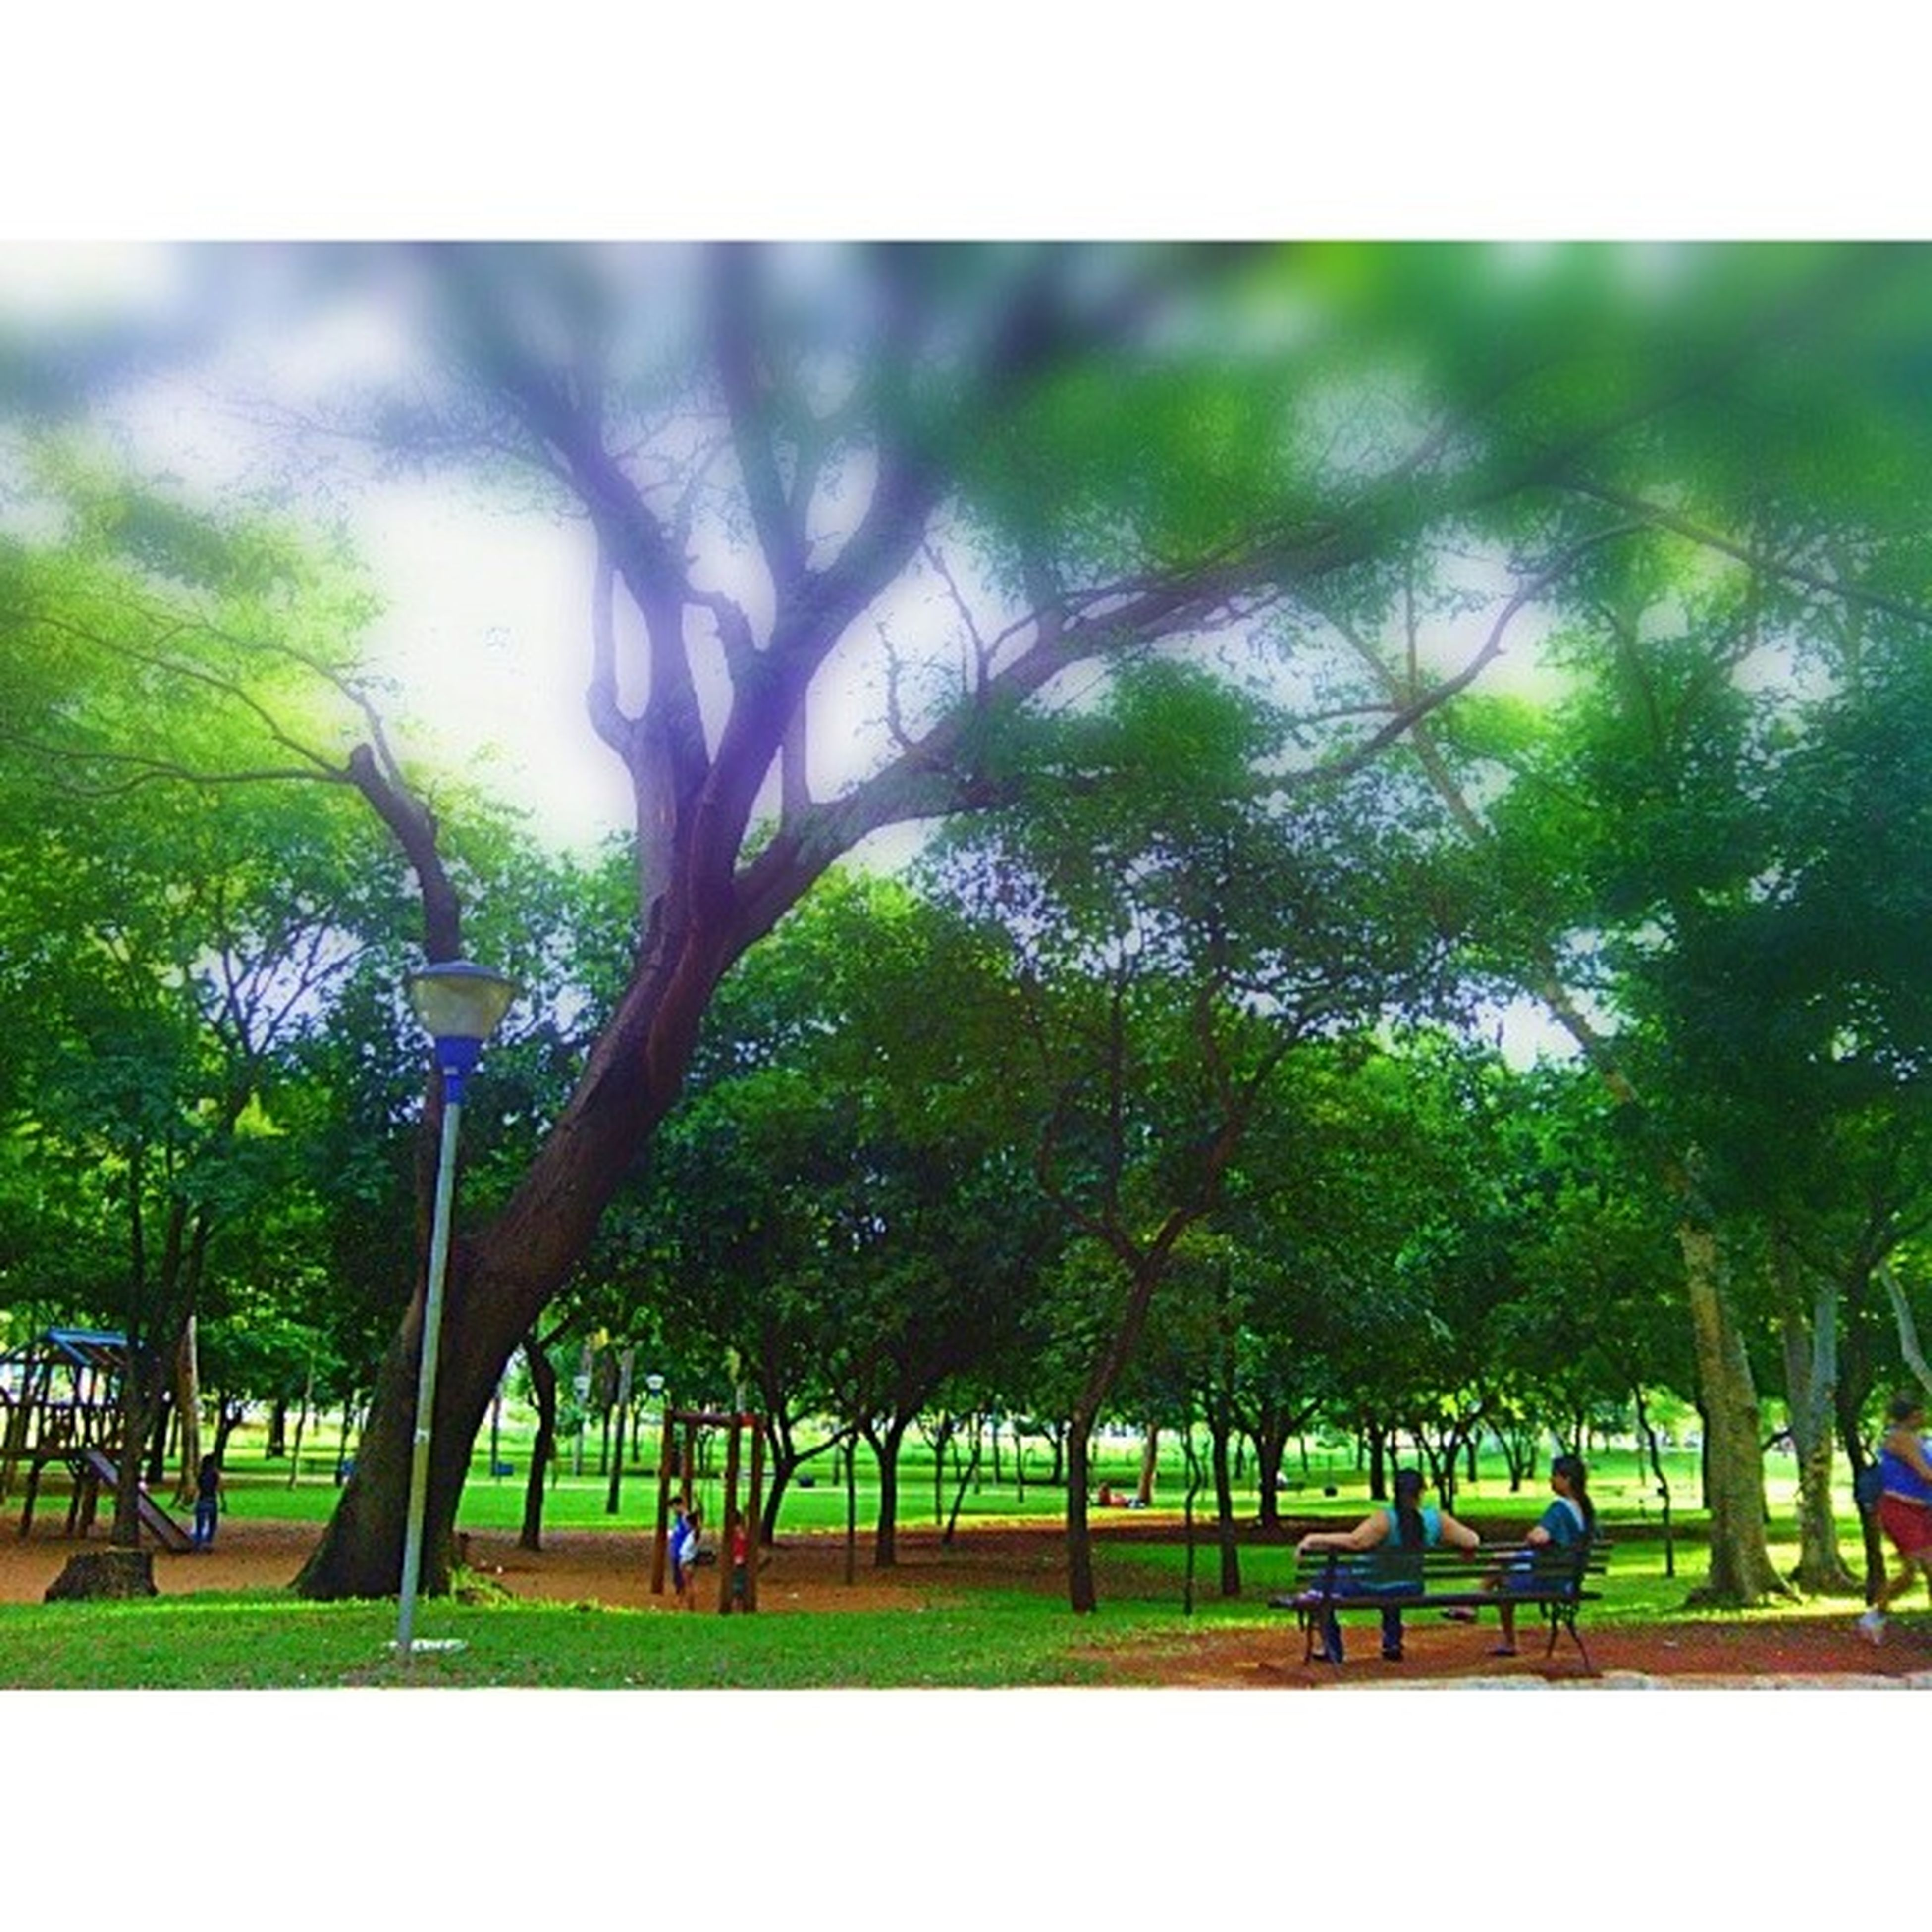 tree, transfer print, green color, growth, auto post production filter, tranquility, grass, nature, tranquil scene, beauty in nature, park - man made space, branch, scenics, tree trunk, day, sky, field, outdoors, green, park